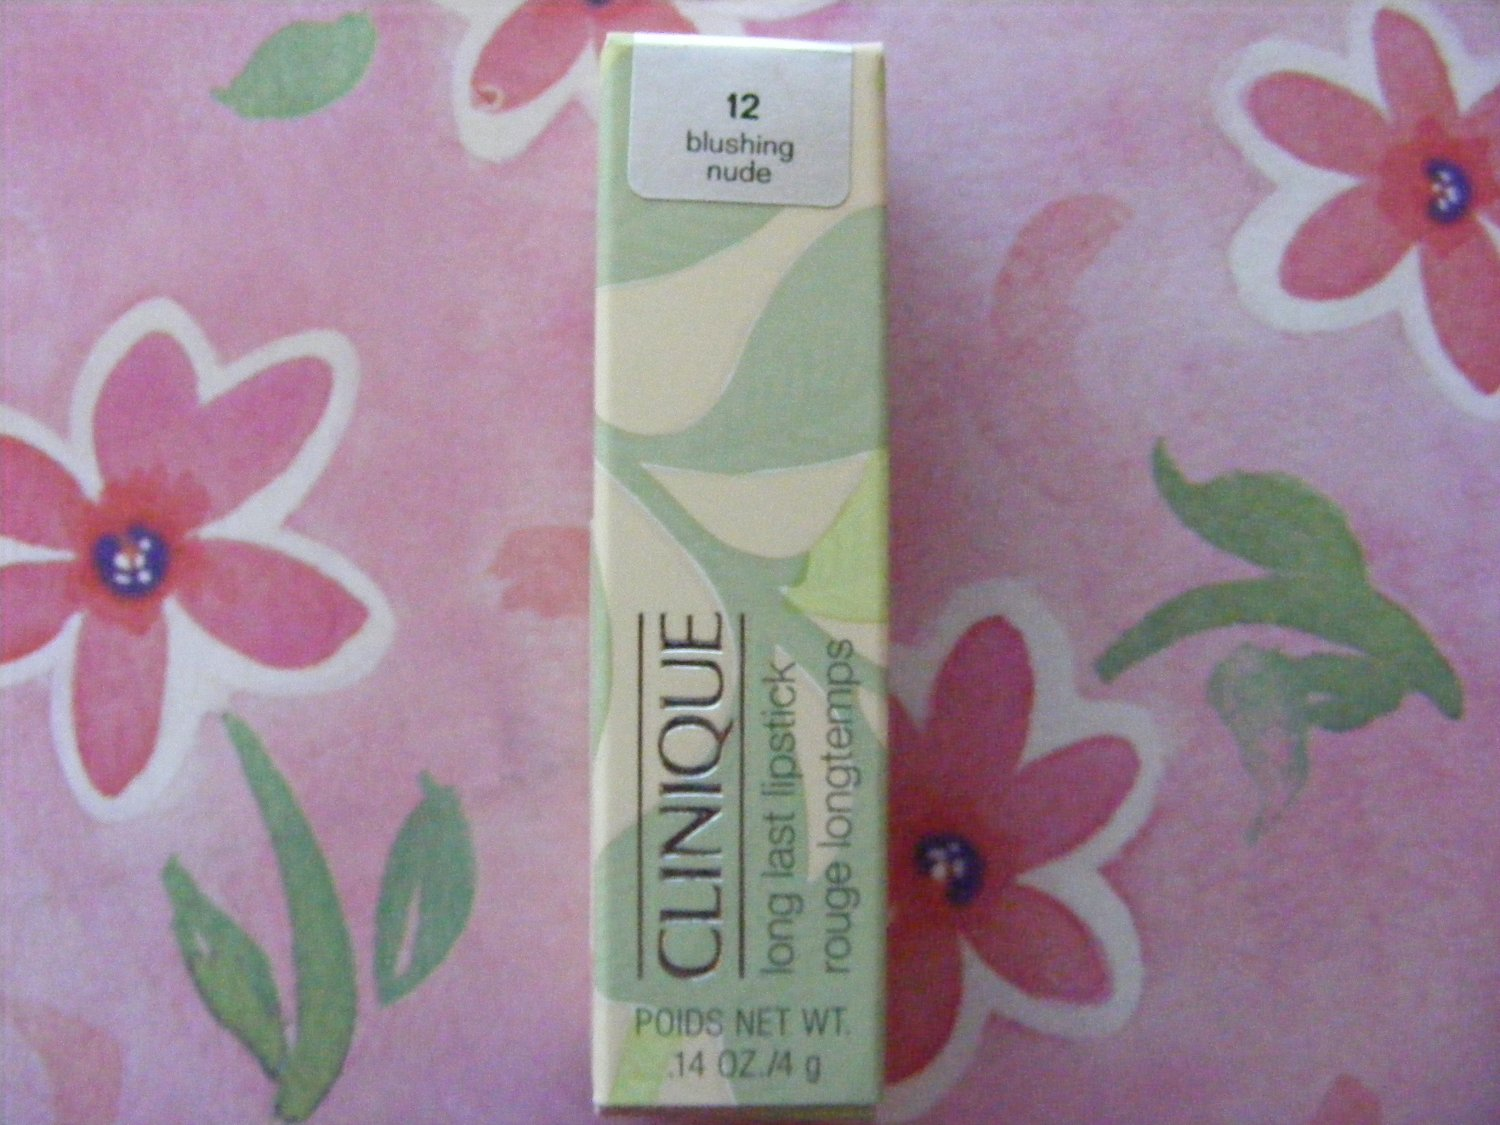 Clinique Blushing Nude Long Last Lipstick New in Box!